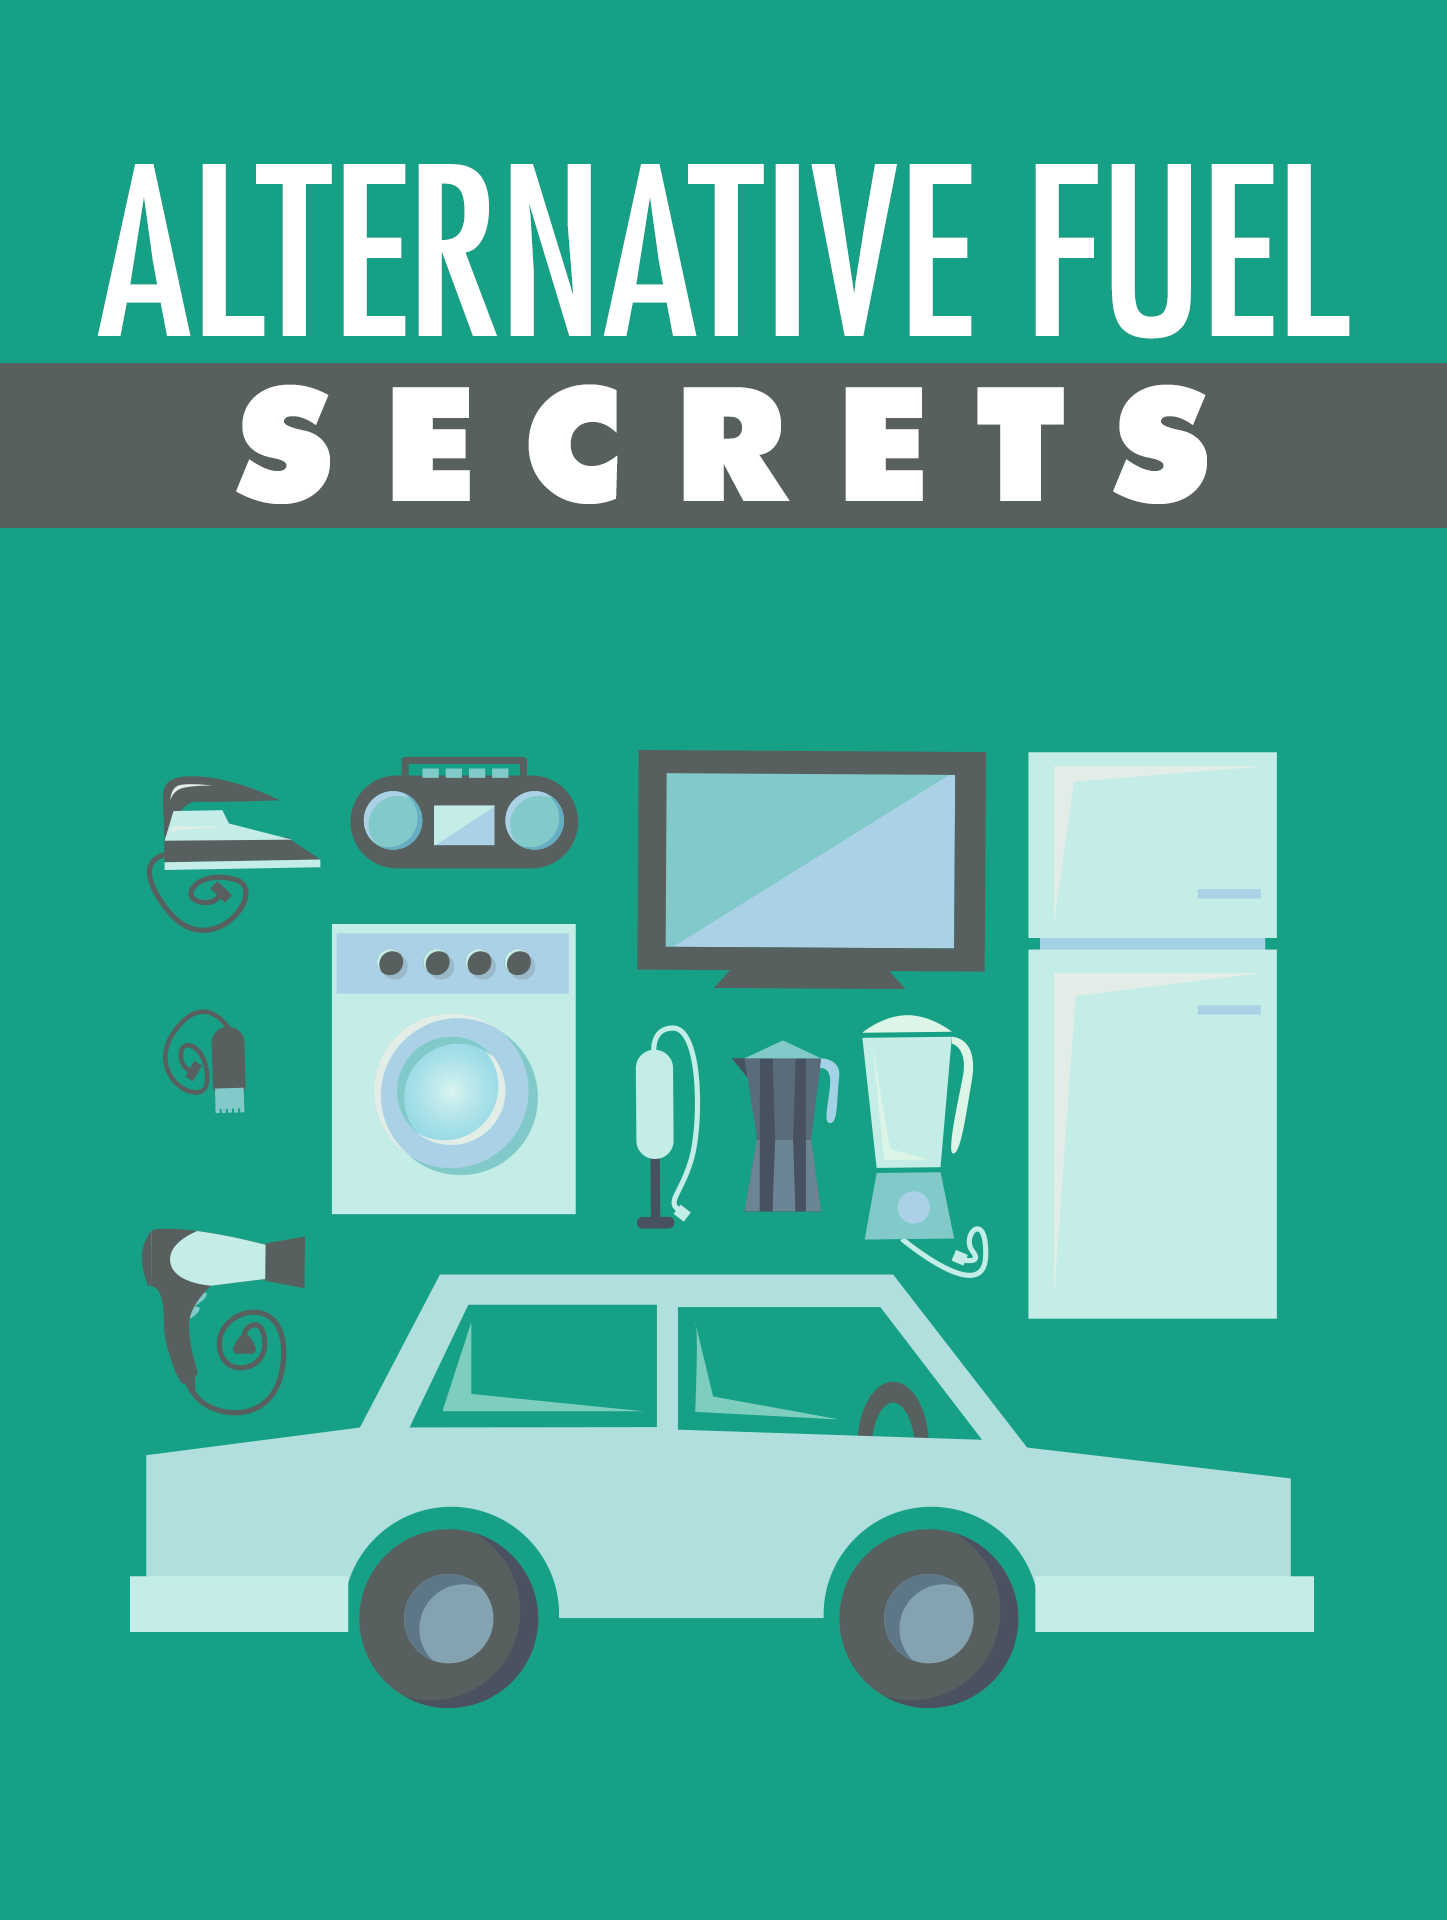 Alternative Fuel Secrets Ebook's Ebook Image